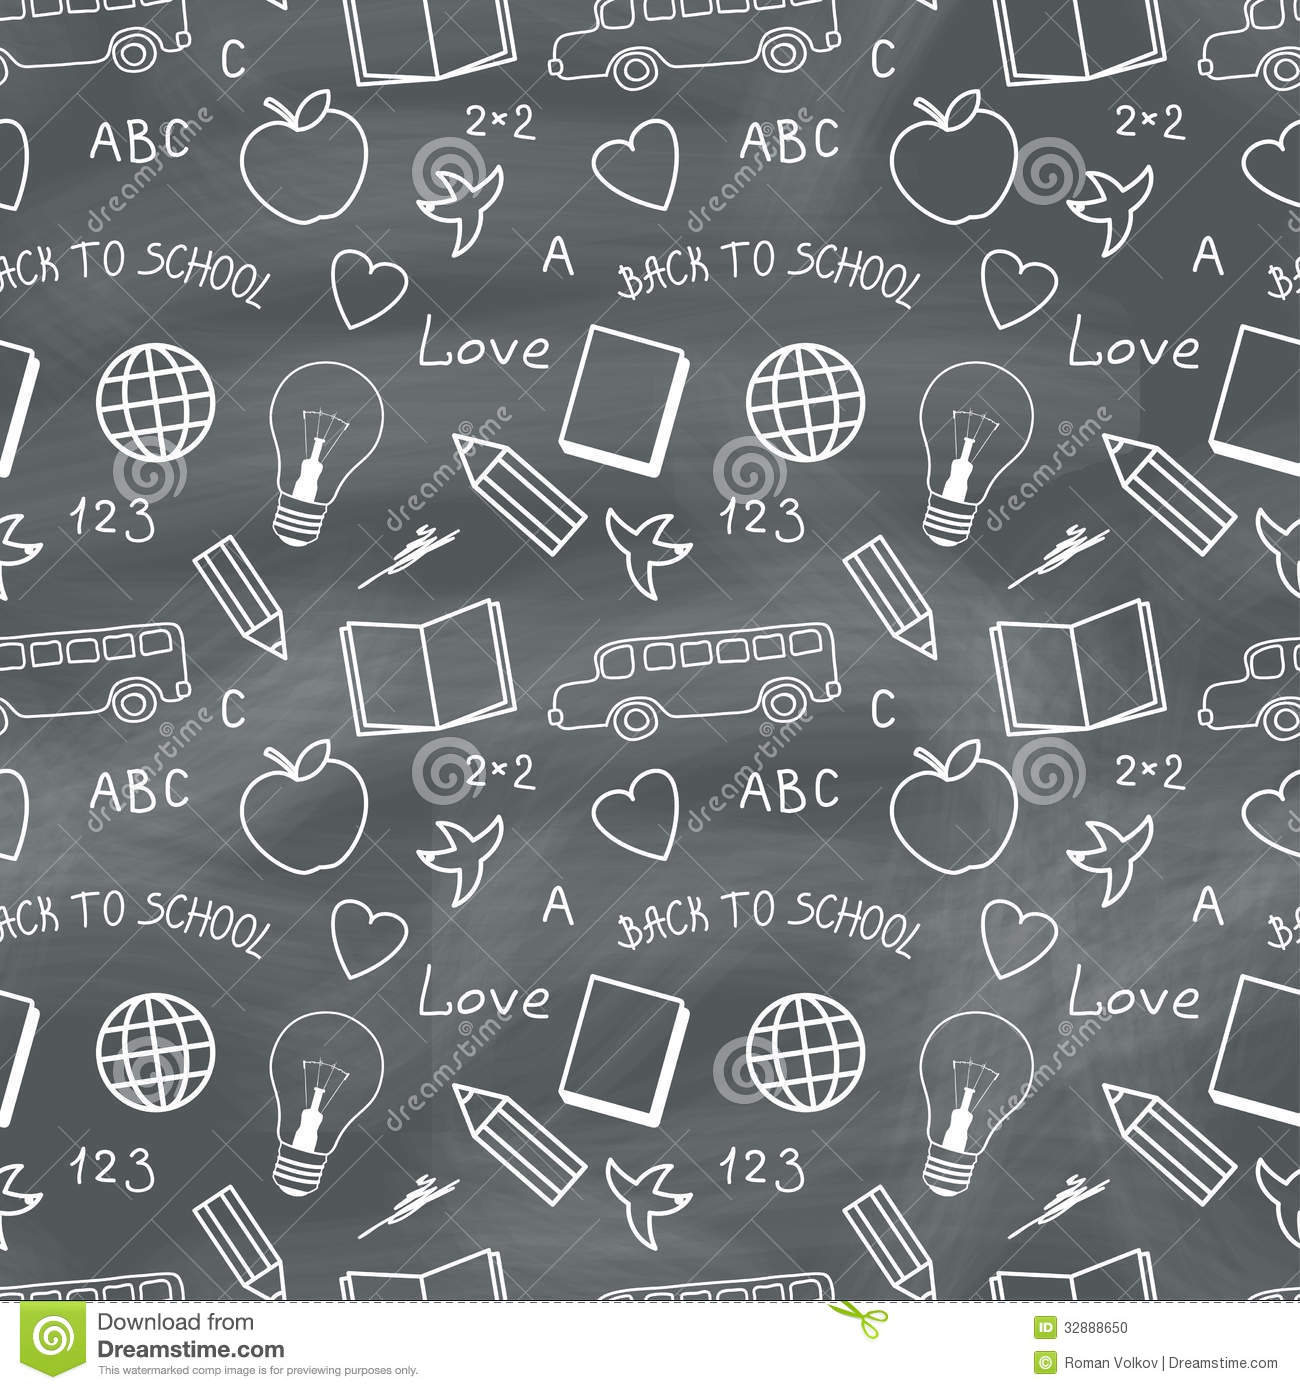 alphabet wallpaper in heart